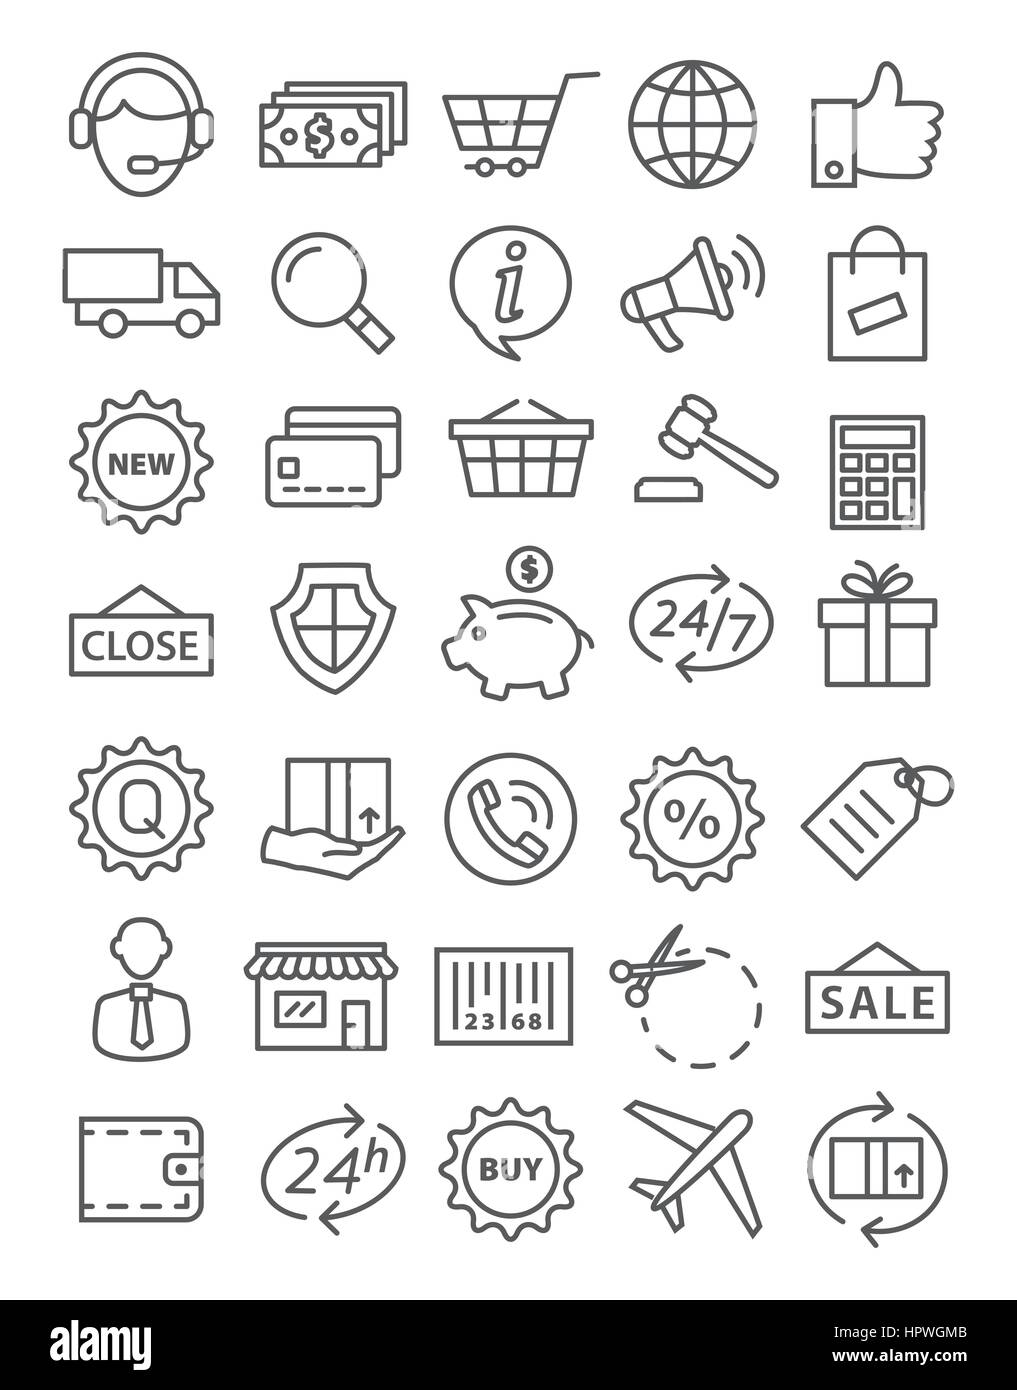 Shopping line icons - Stock Image